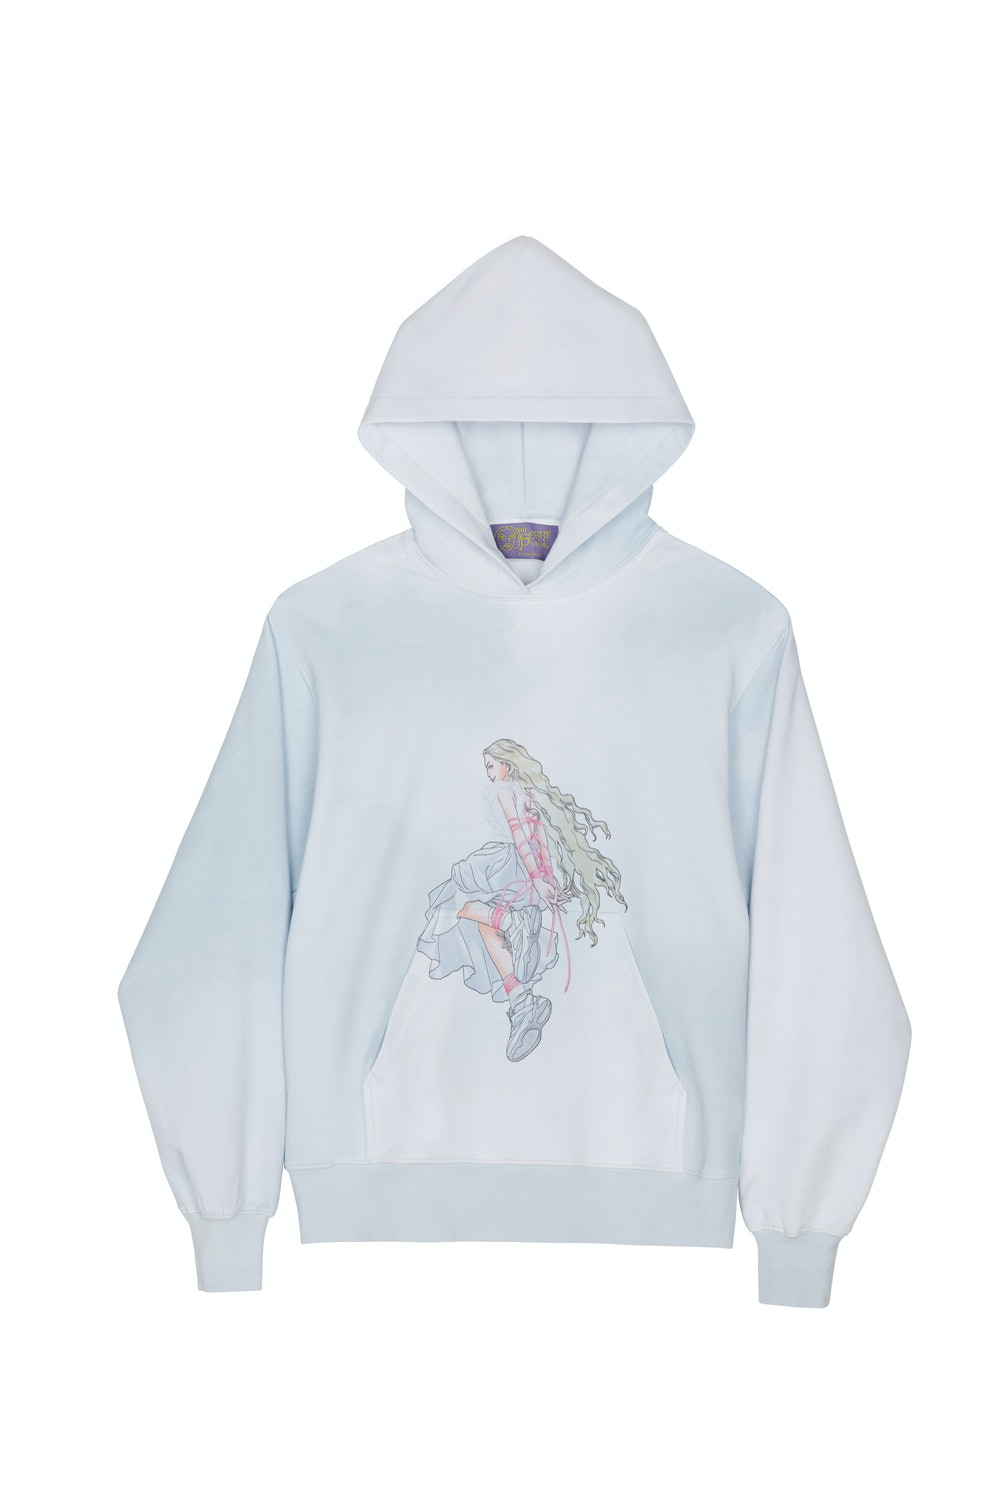 SSENSE Exclusive Blue & White Graphic Pullover Hoodie